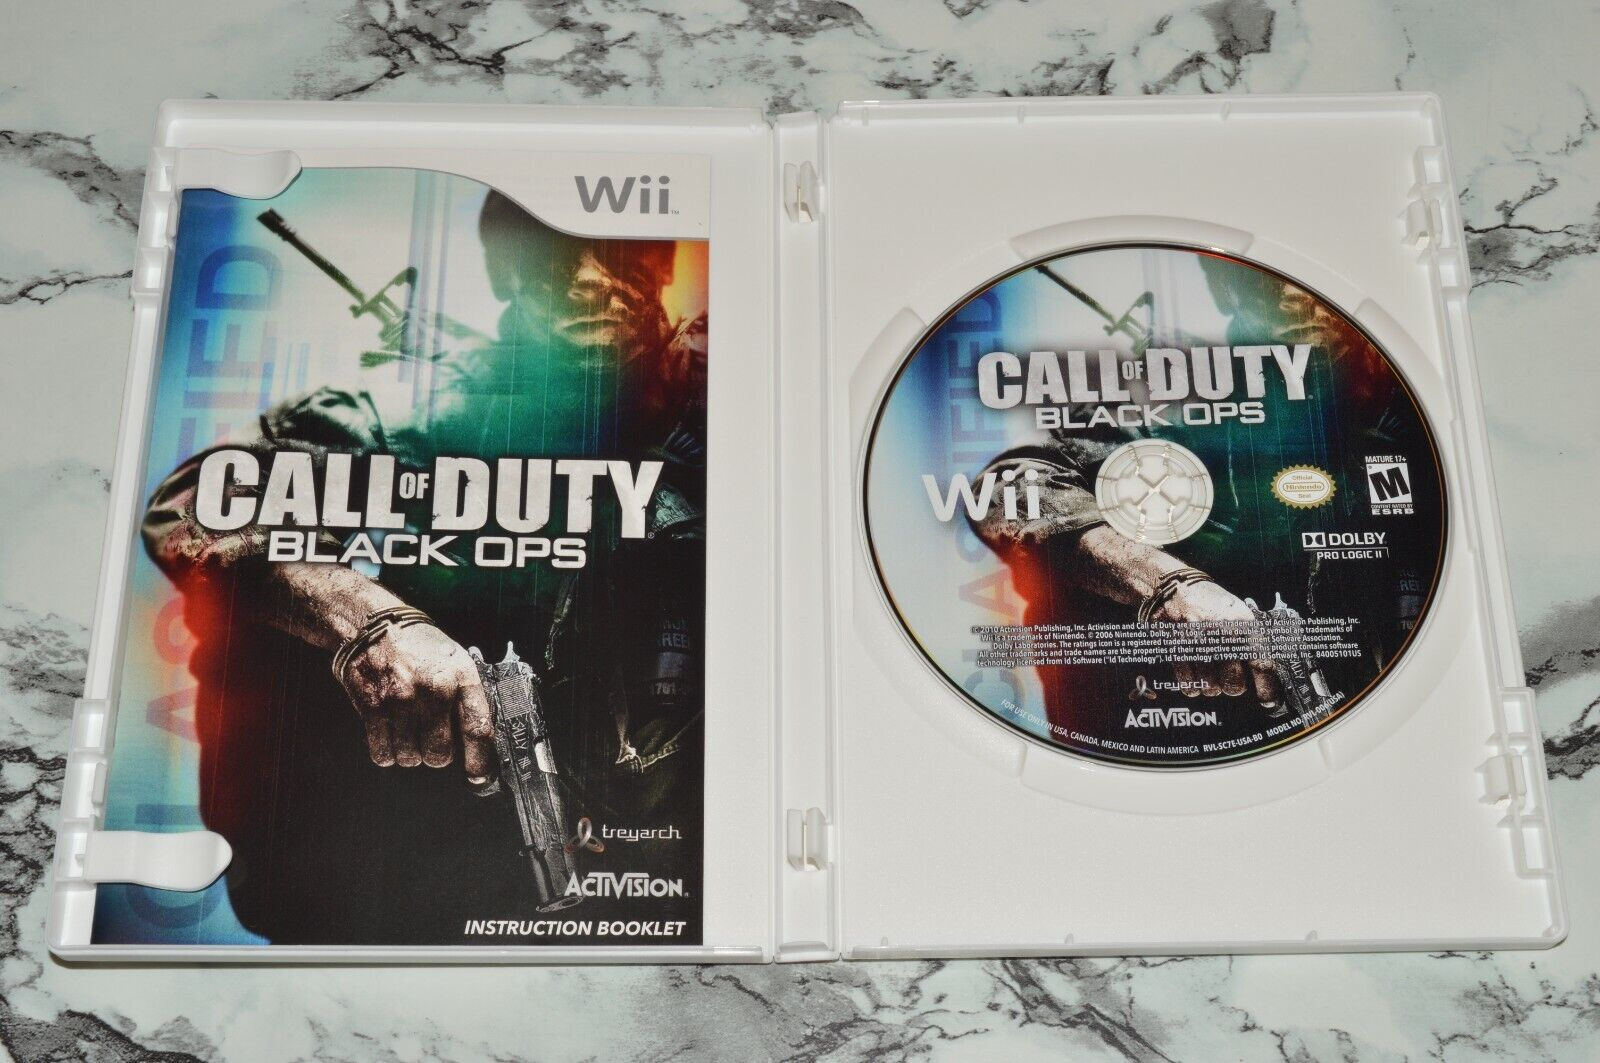 Call Of Duty COD - Black Ops Nintendo Wii, 2010 -- Complete W/ Manual - $11.18